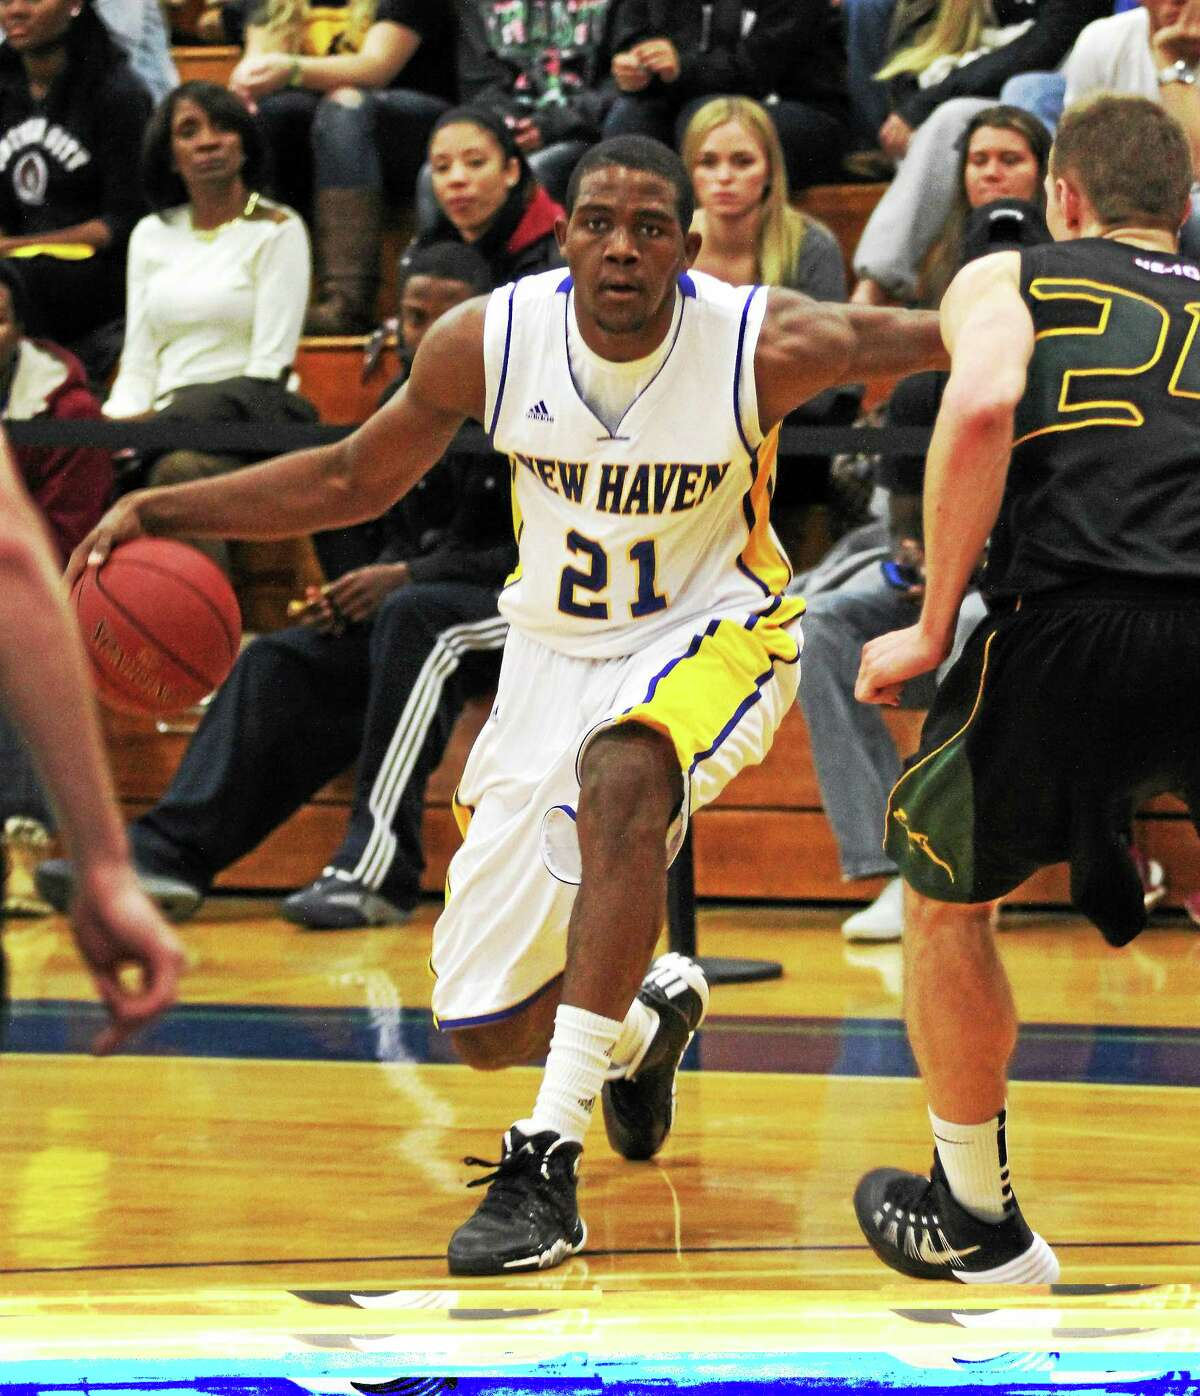 Eric Anderson and the New Haven men's basketball team will take on rival SCSU today with the Northeast-10 Conference championship on the line.